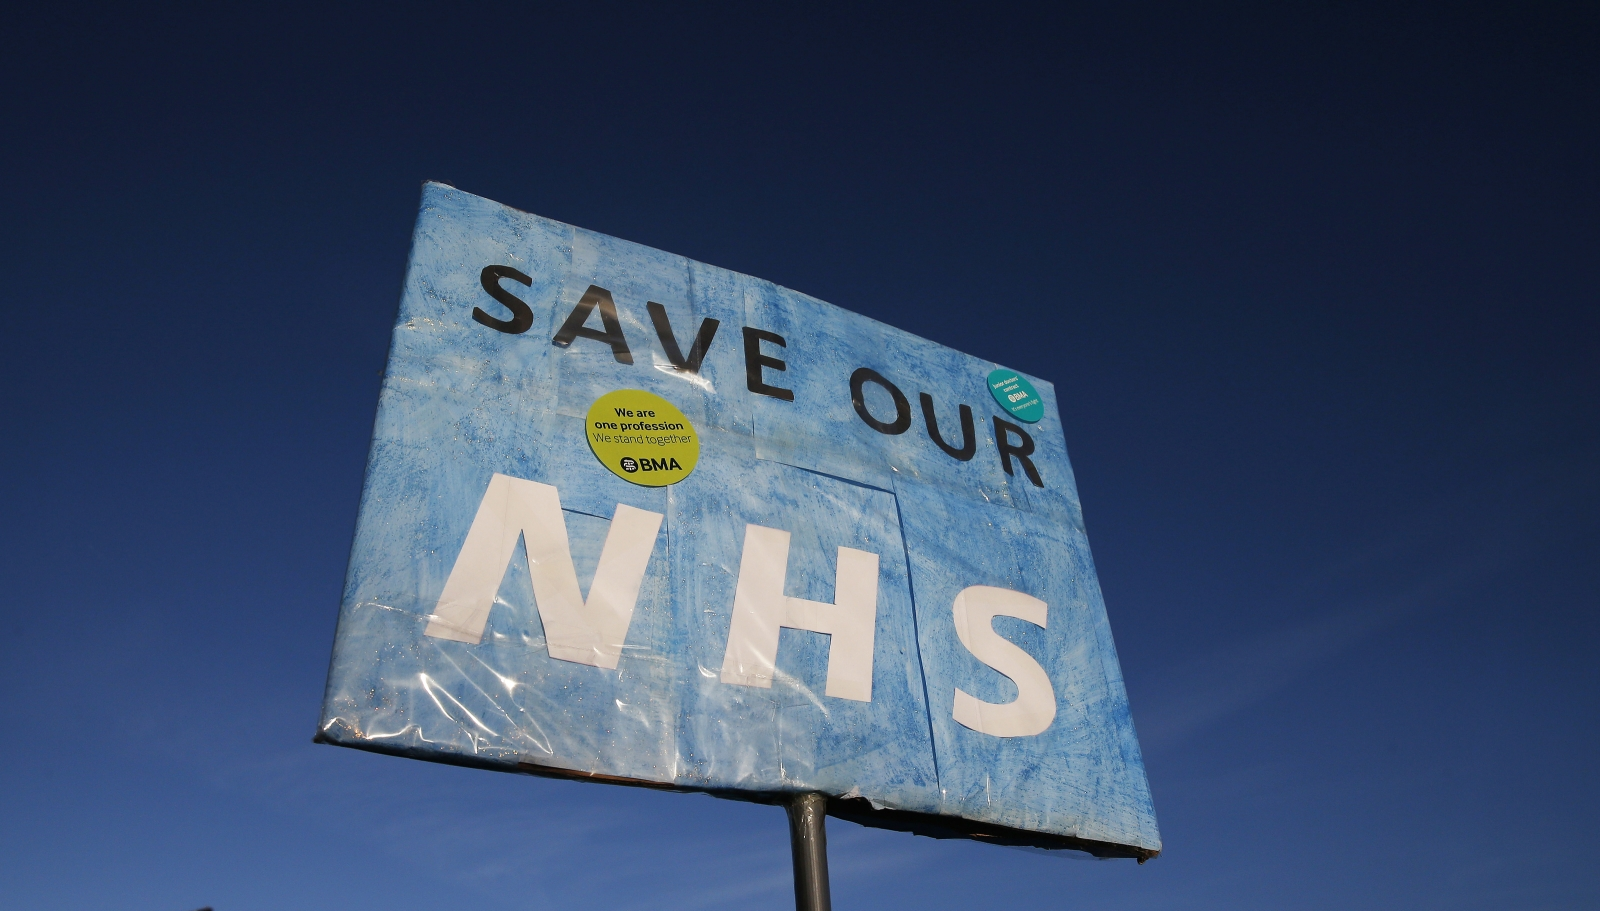 NHS planning for hospital closures and other cutbacks to meet increasing demand and fight health budget deficit